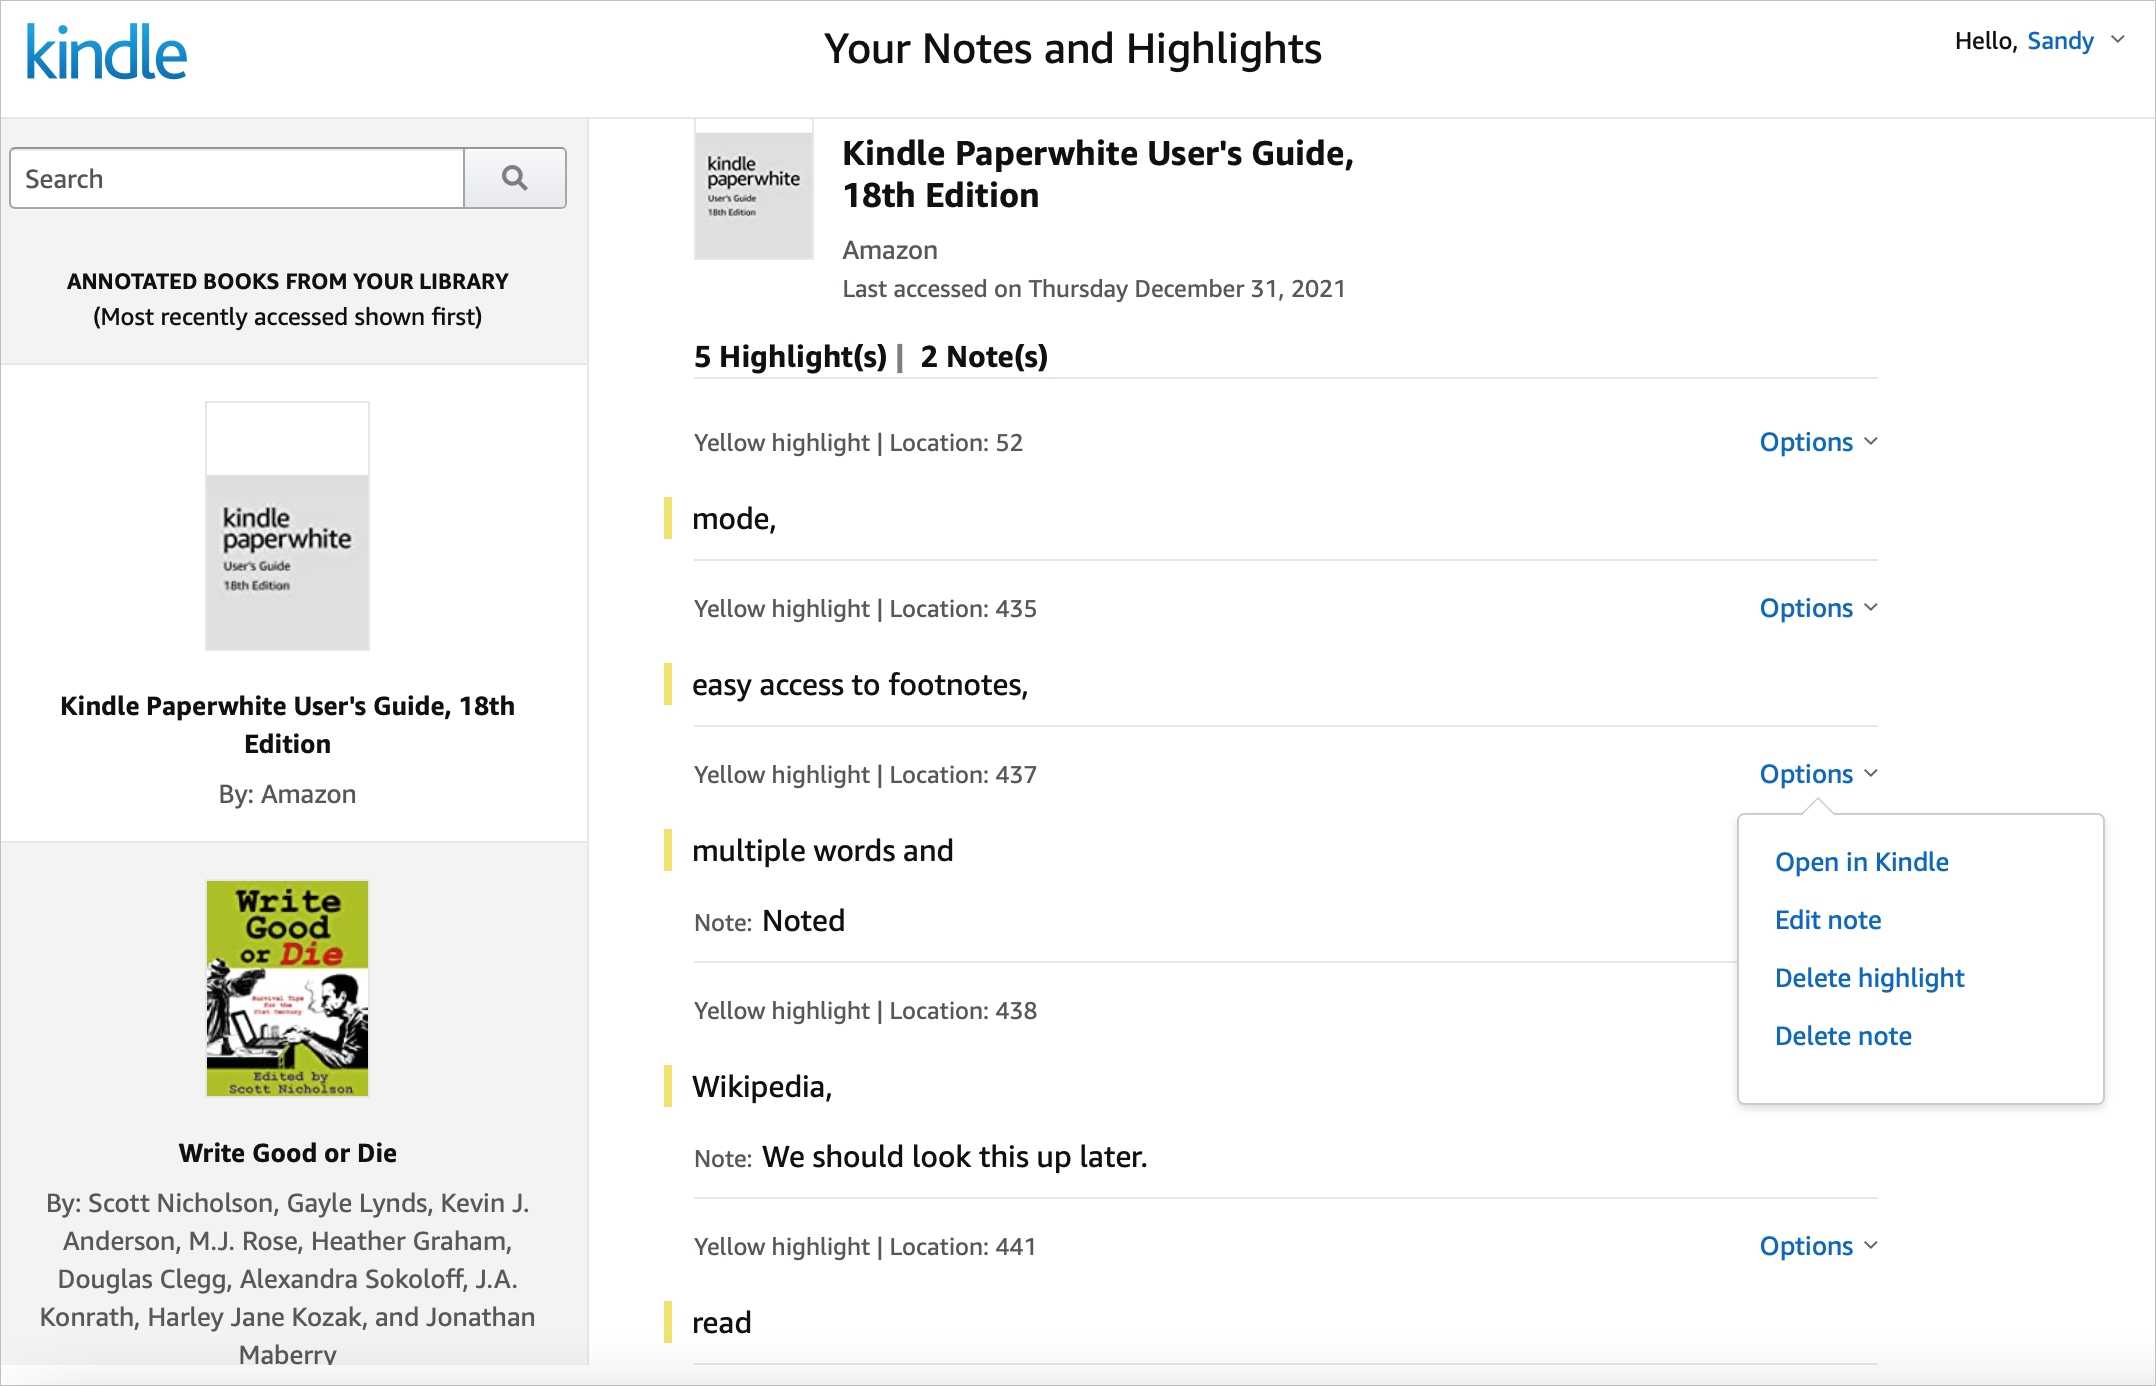 Your Kindle Notes and Highlights Online